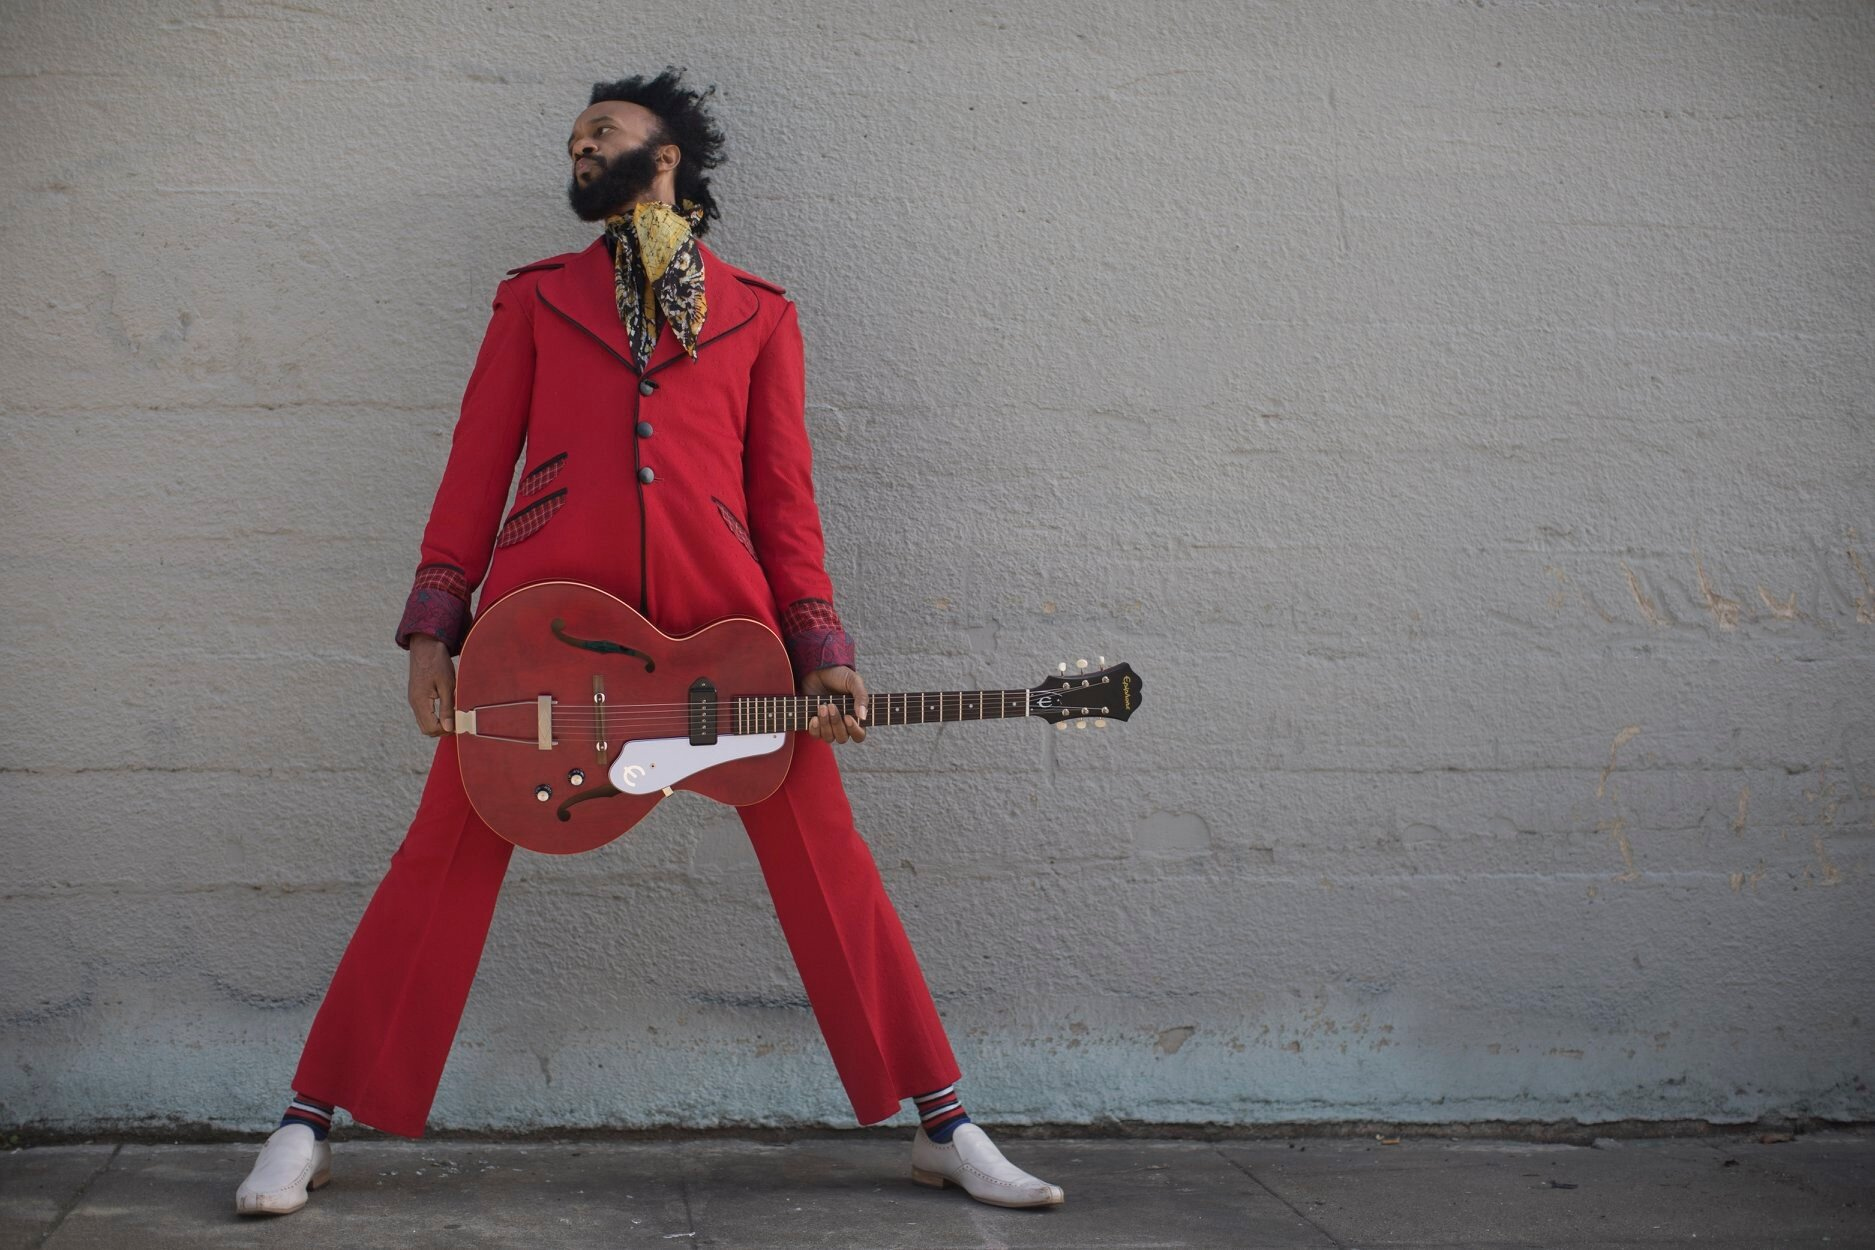 Fantastic Negrito, one of the performers at HSB '19